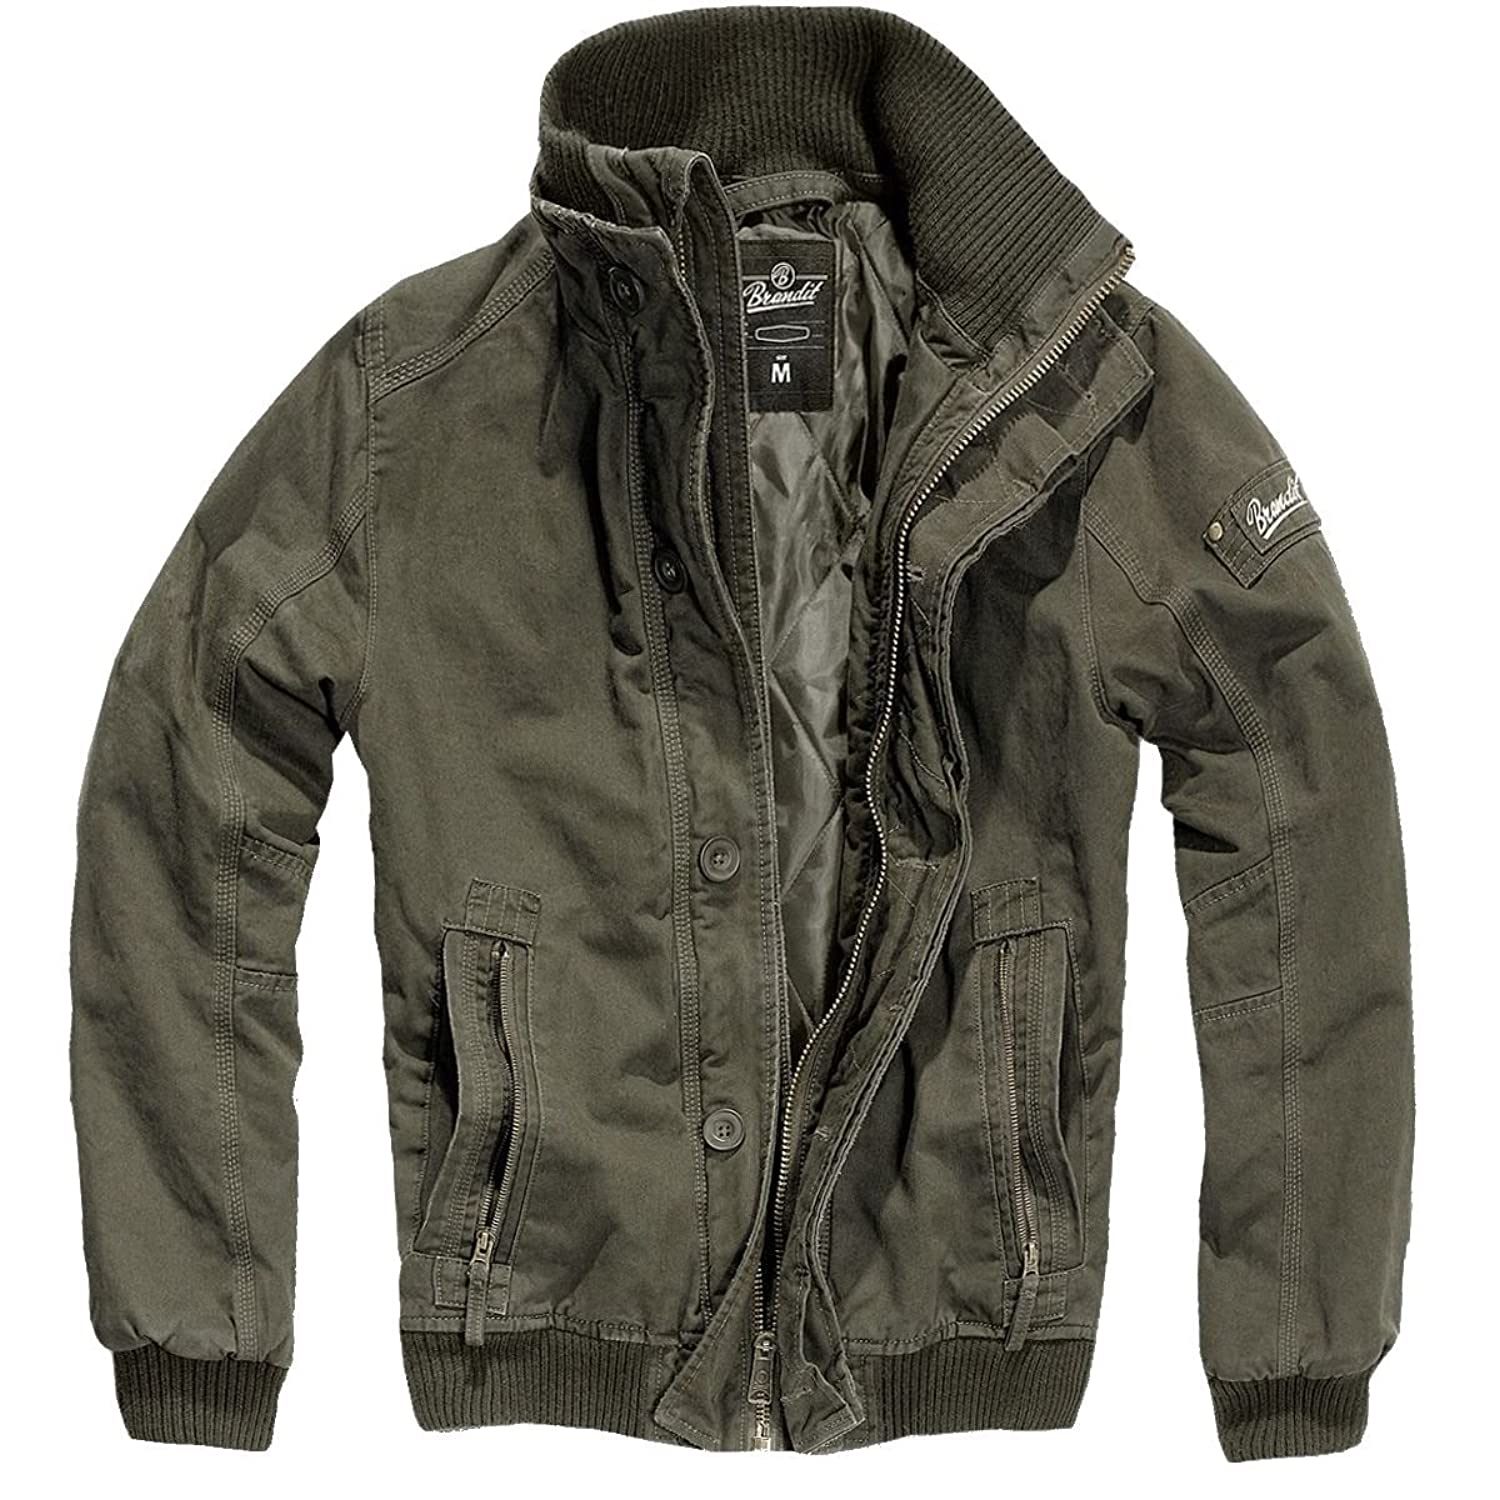 Brandit Herren Jacke Pike Road Outdoorjacket